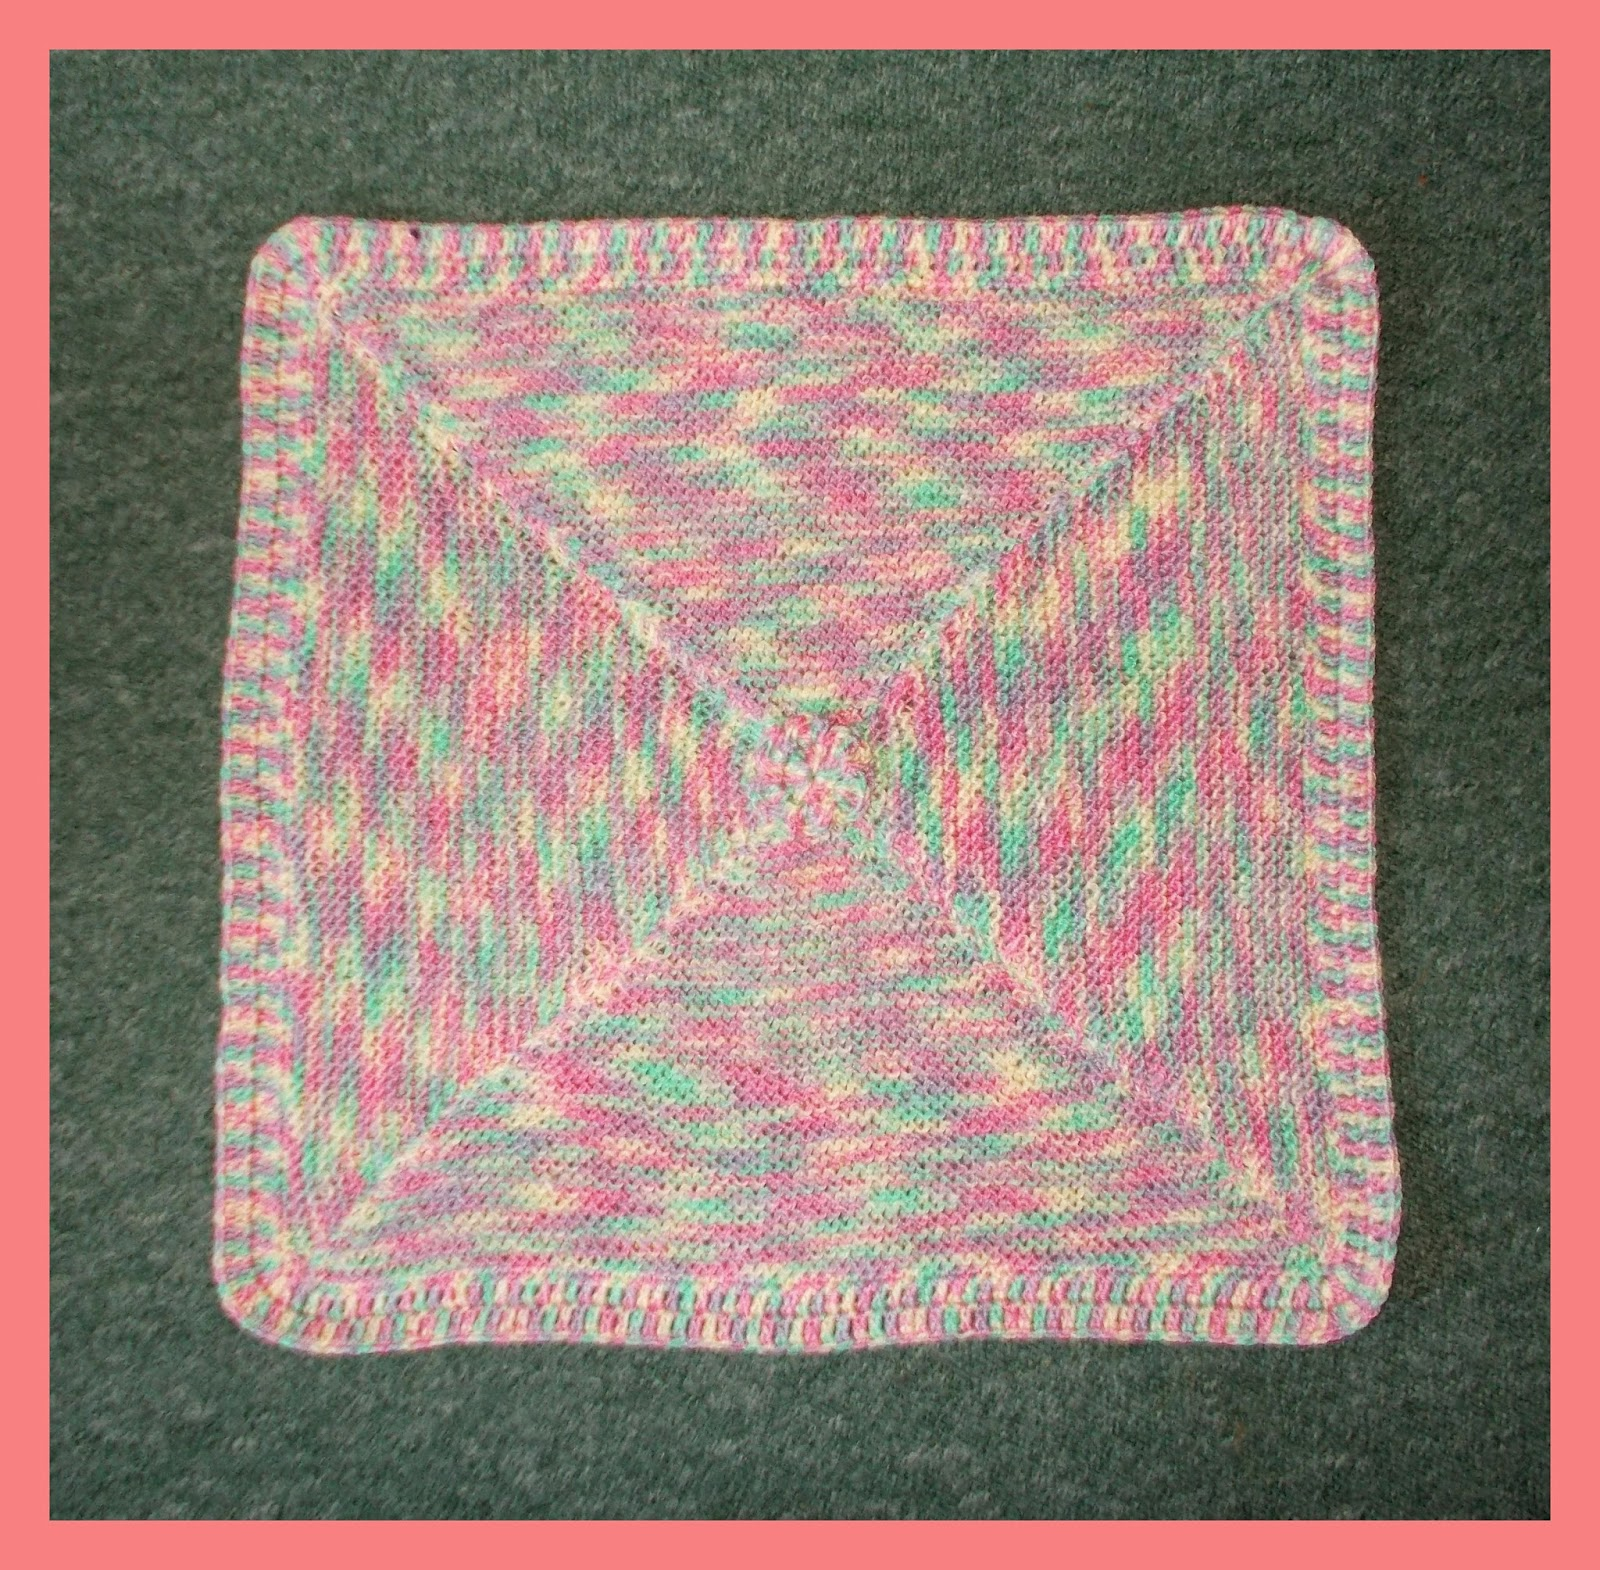 mariannas lazy daisy days: Simple Garter Stitch Baby Blanket